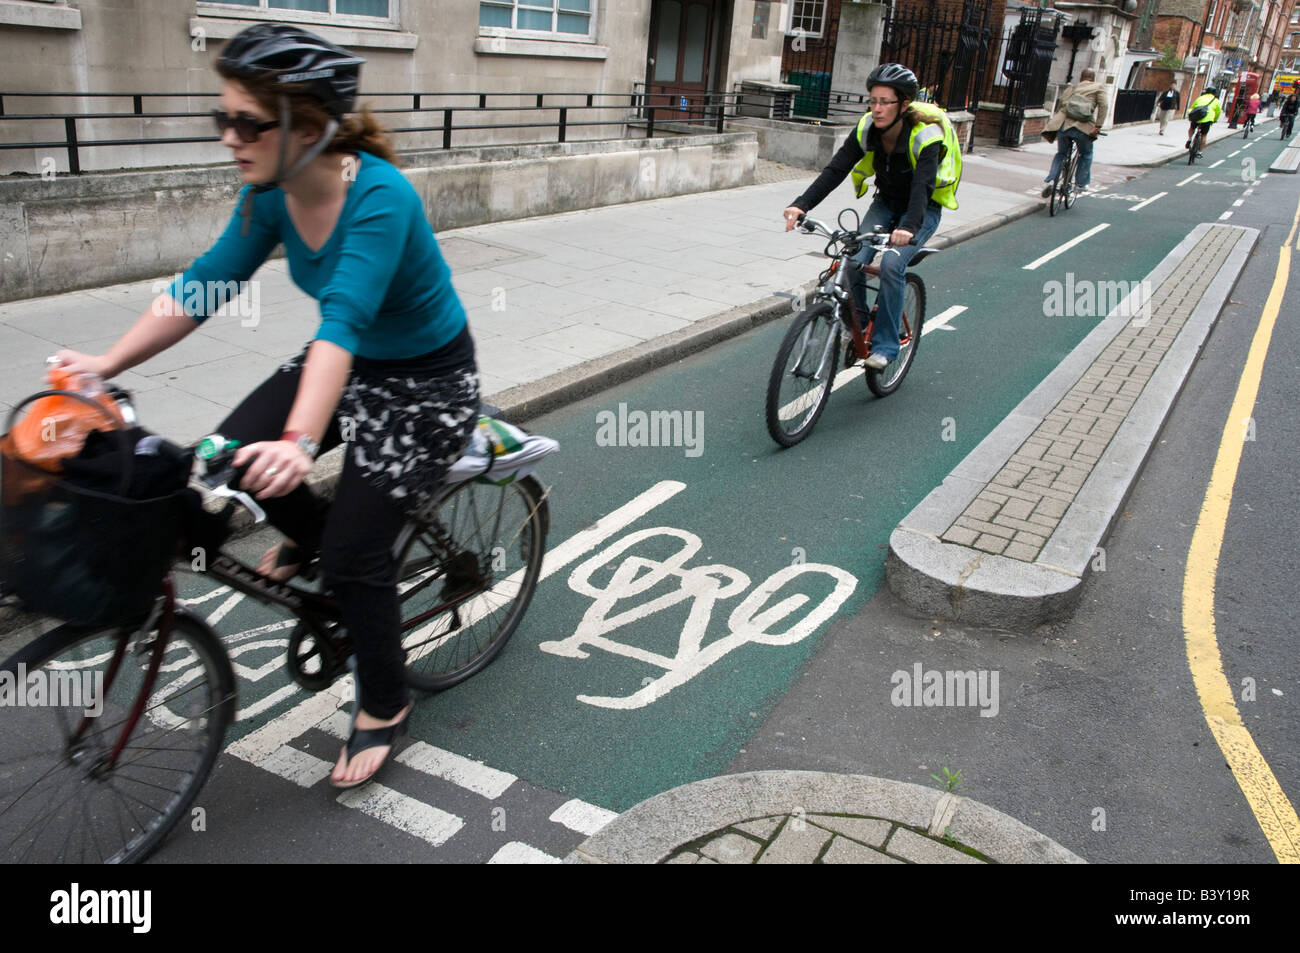 Cyclists riding in segregated cycling lane, London, England, UK - Stock Image